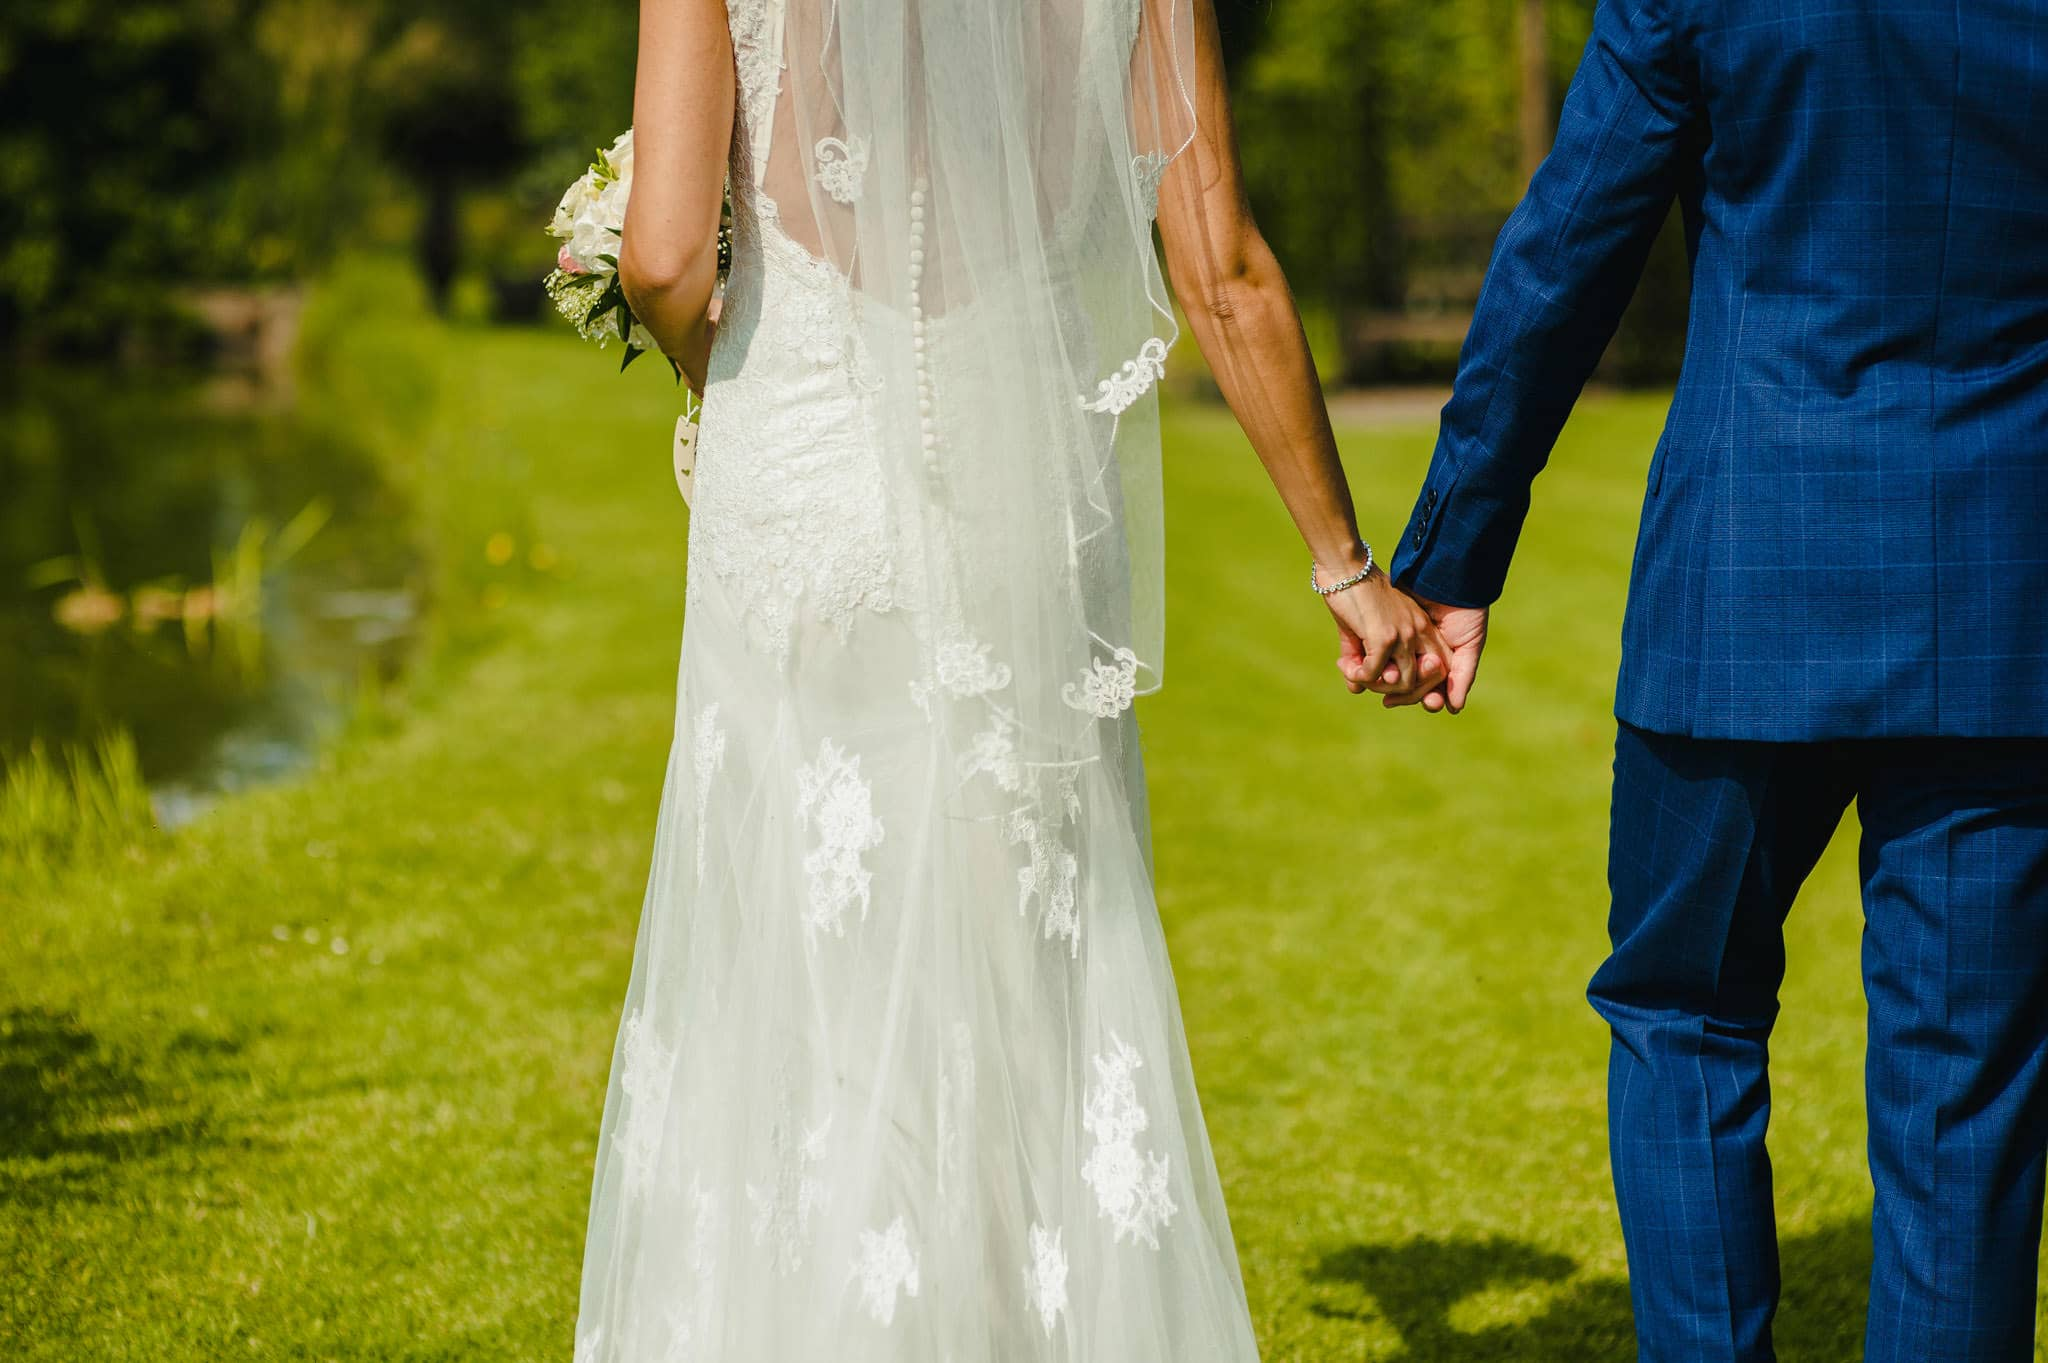 Wedding at Redhouse Barn in Stoke Prior, Worcestershire 105